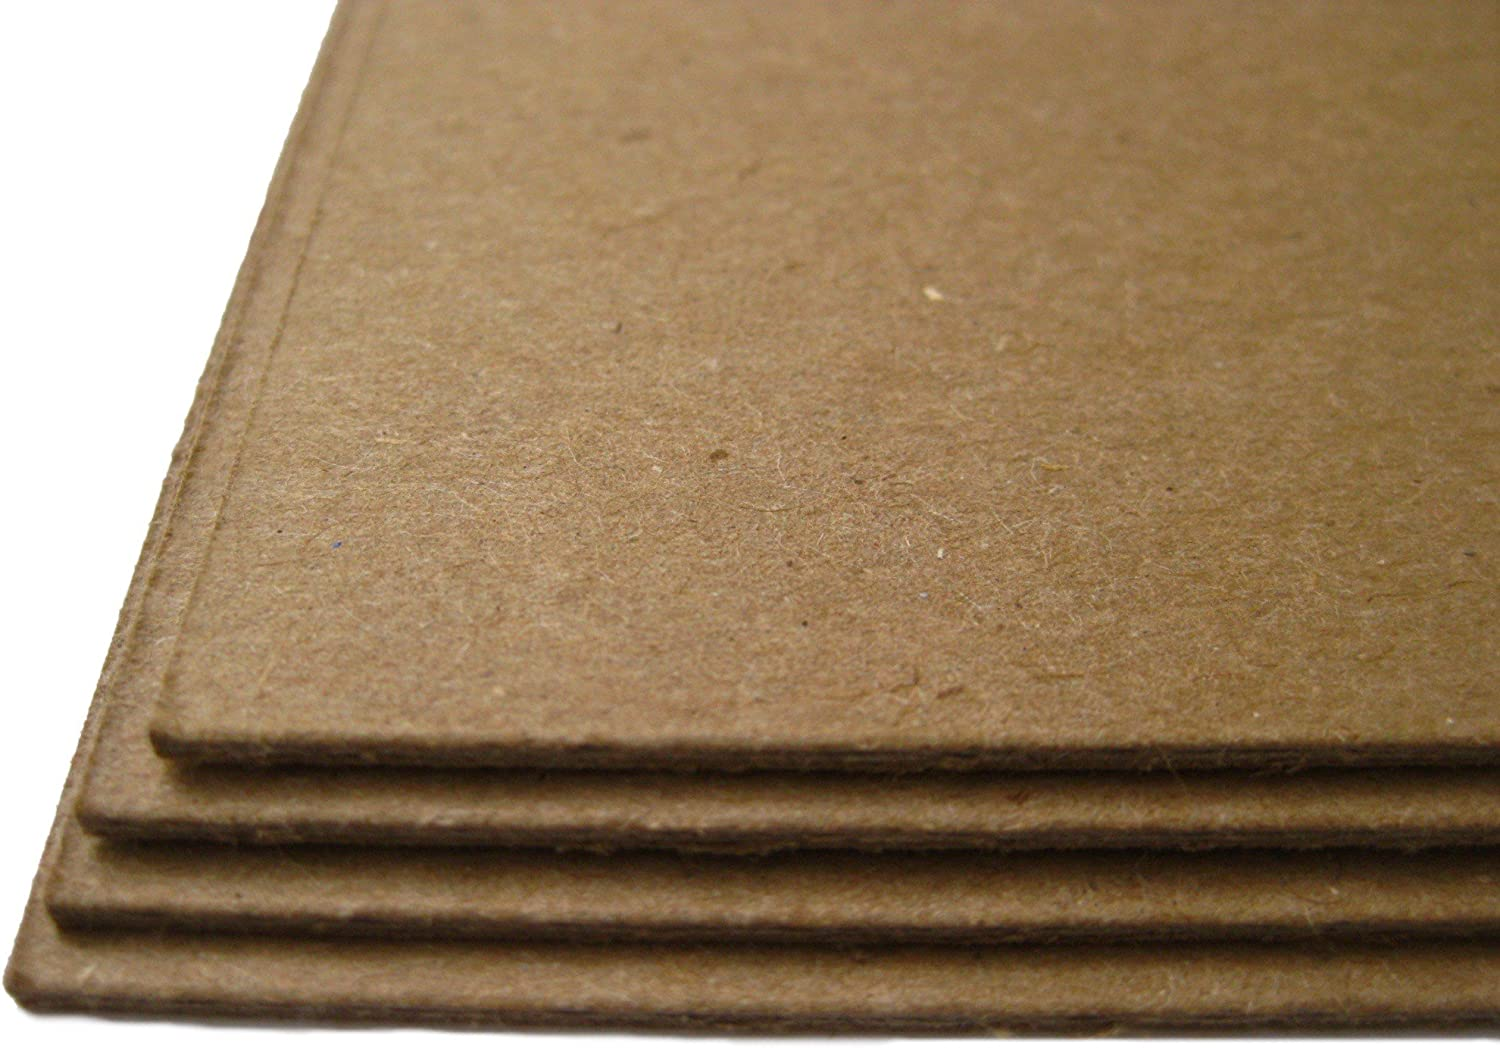 10 Sheets Brown Chipboard 80 Point Extra Thick 8 X 8 Inches Album|Scrapbook Size .080 Caliper XX Heavy Cardboard as Thick as 20 Sheets 20# Paper